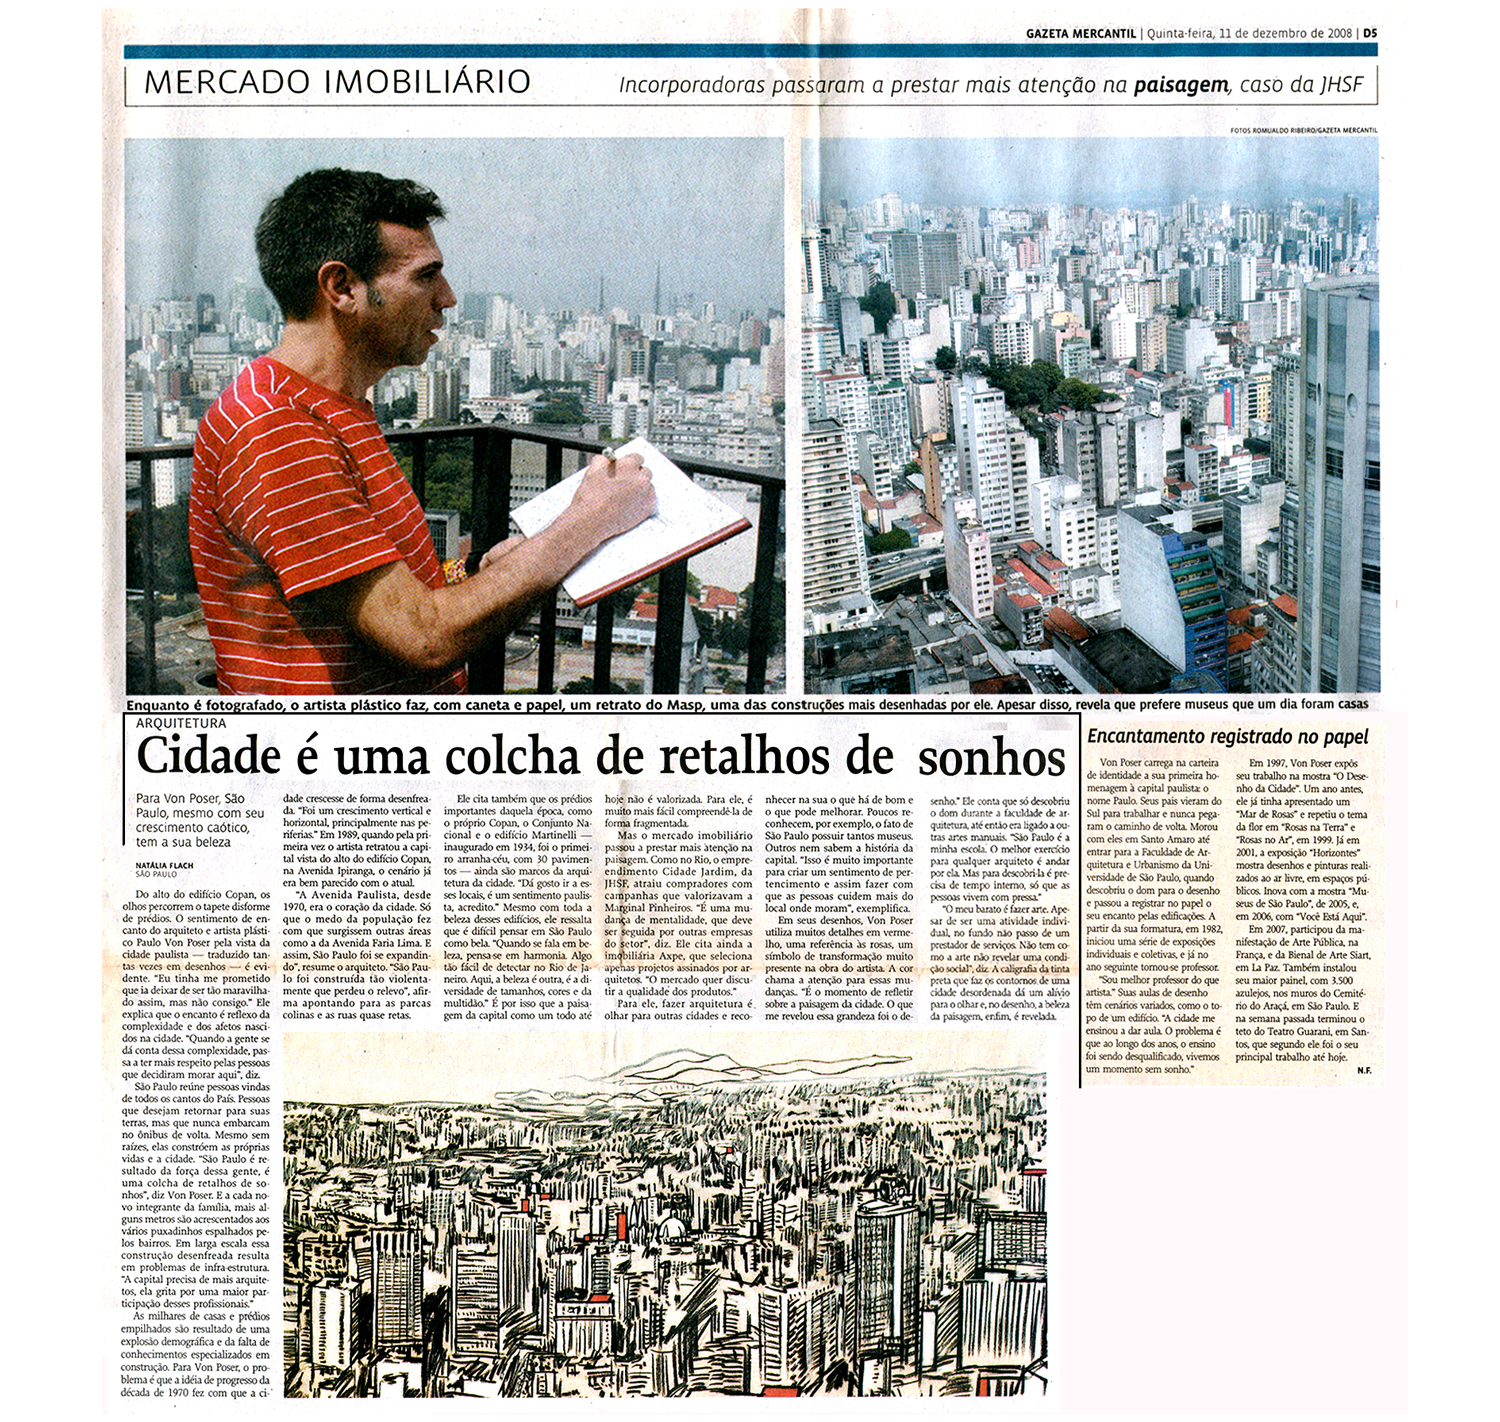 gazeta-mercantil-2008